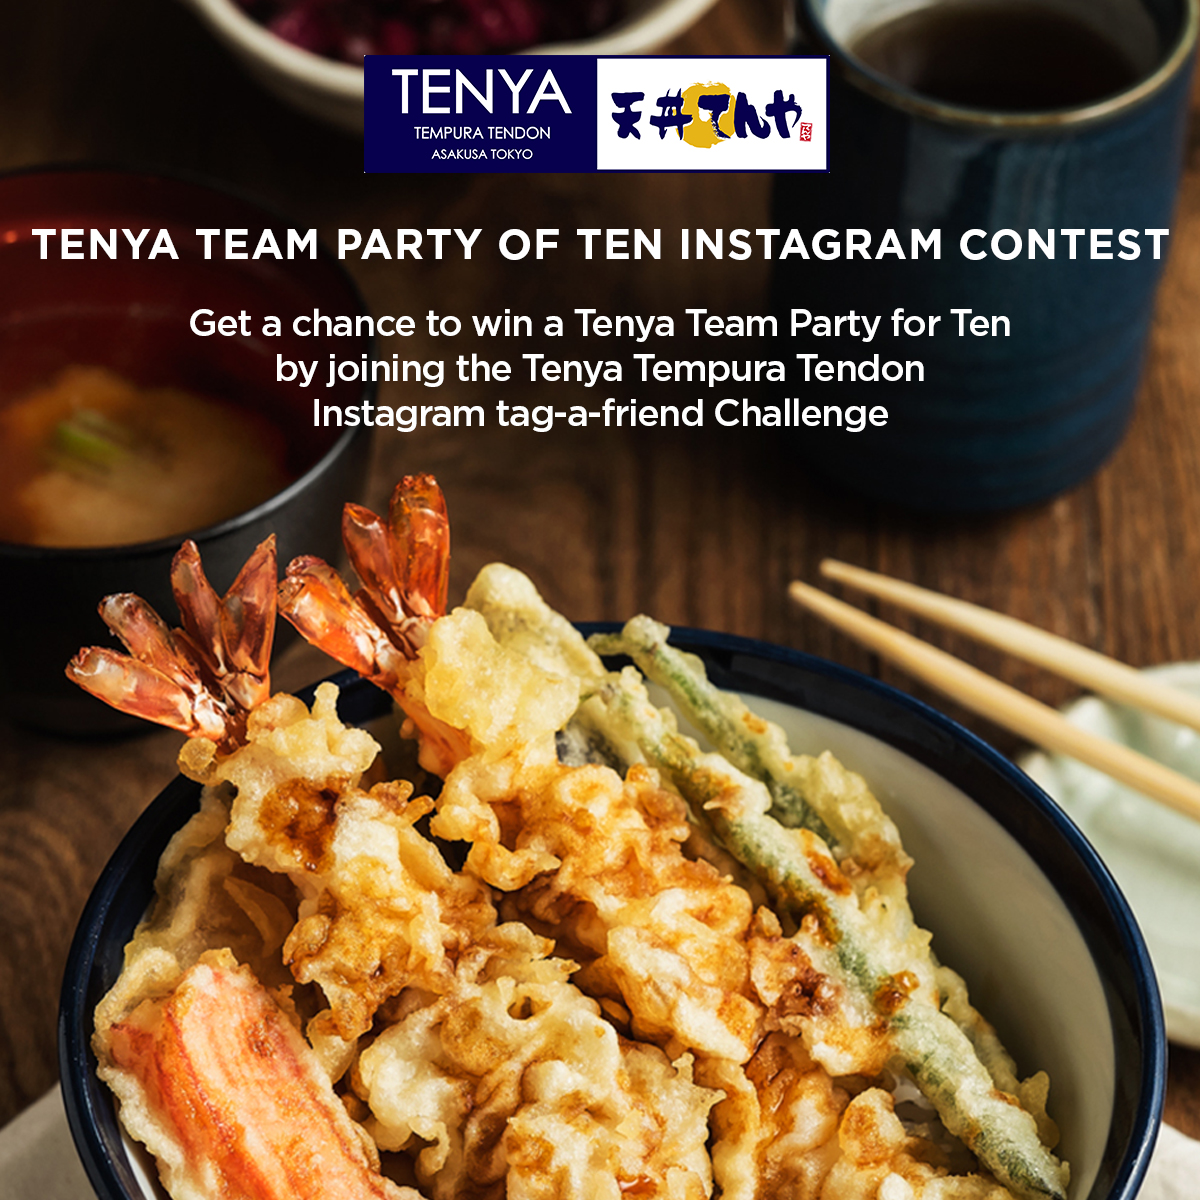 Get a Chance to Win a Tenya Party for Family and Friends